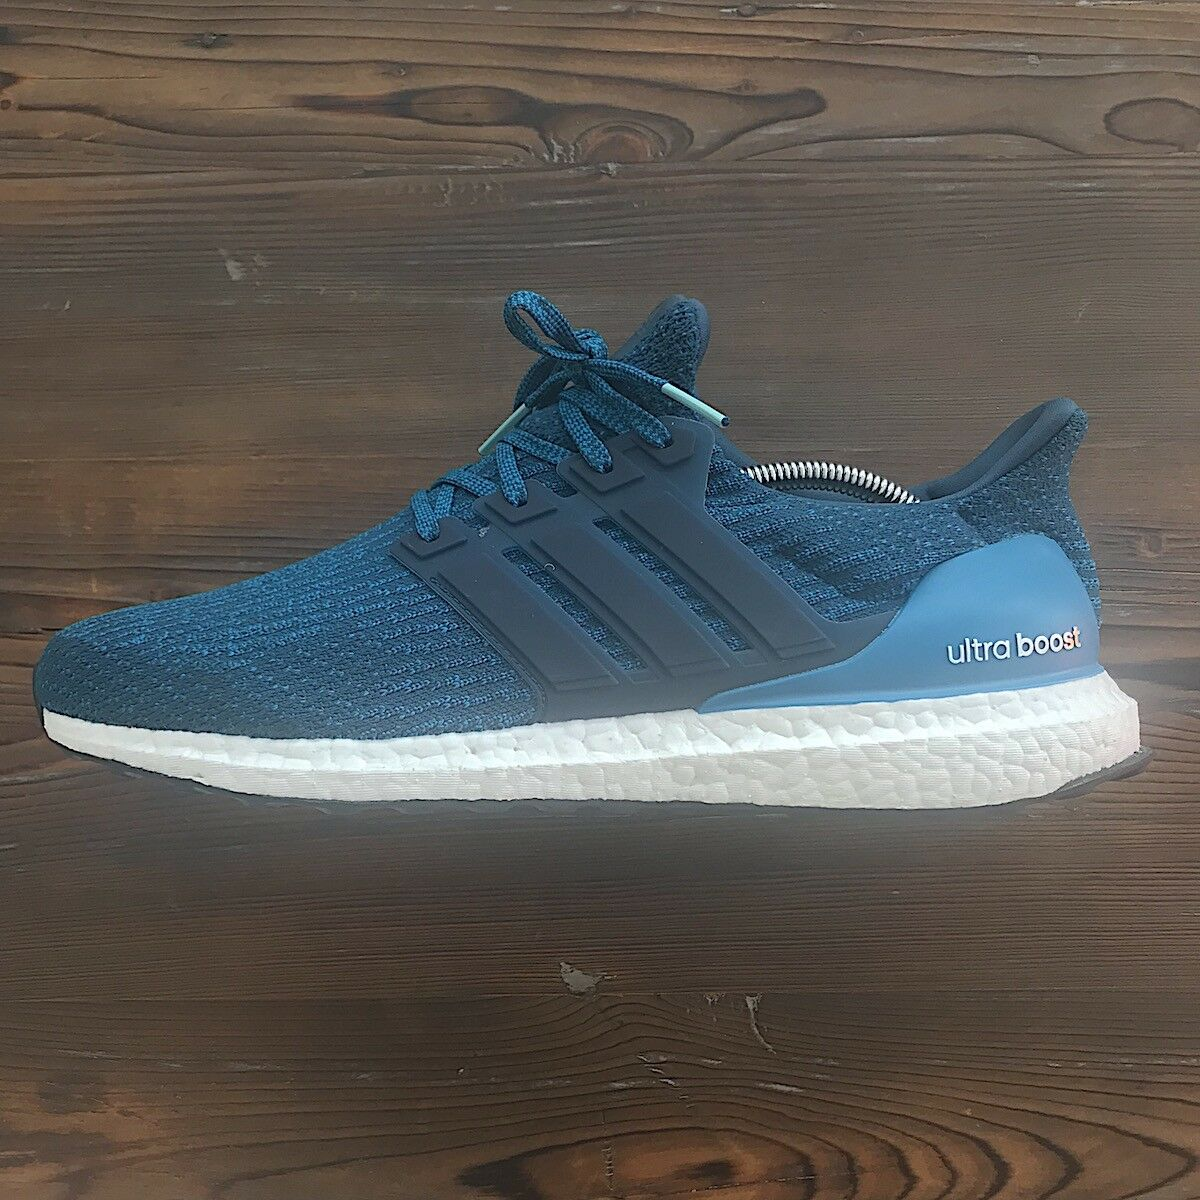 Adidas UltraBoost 3.0 Blue Petrol US 11.5 / S82021 - SOLD OUT